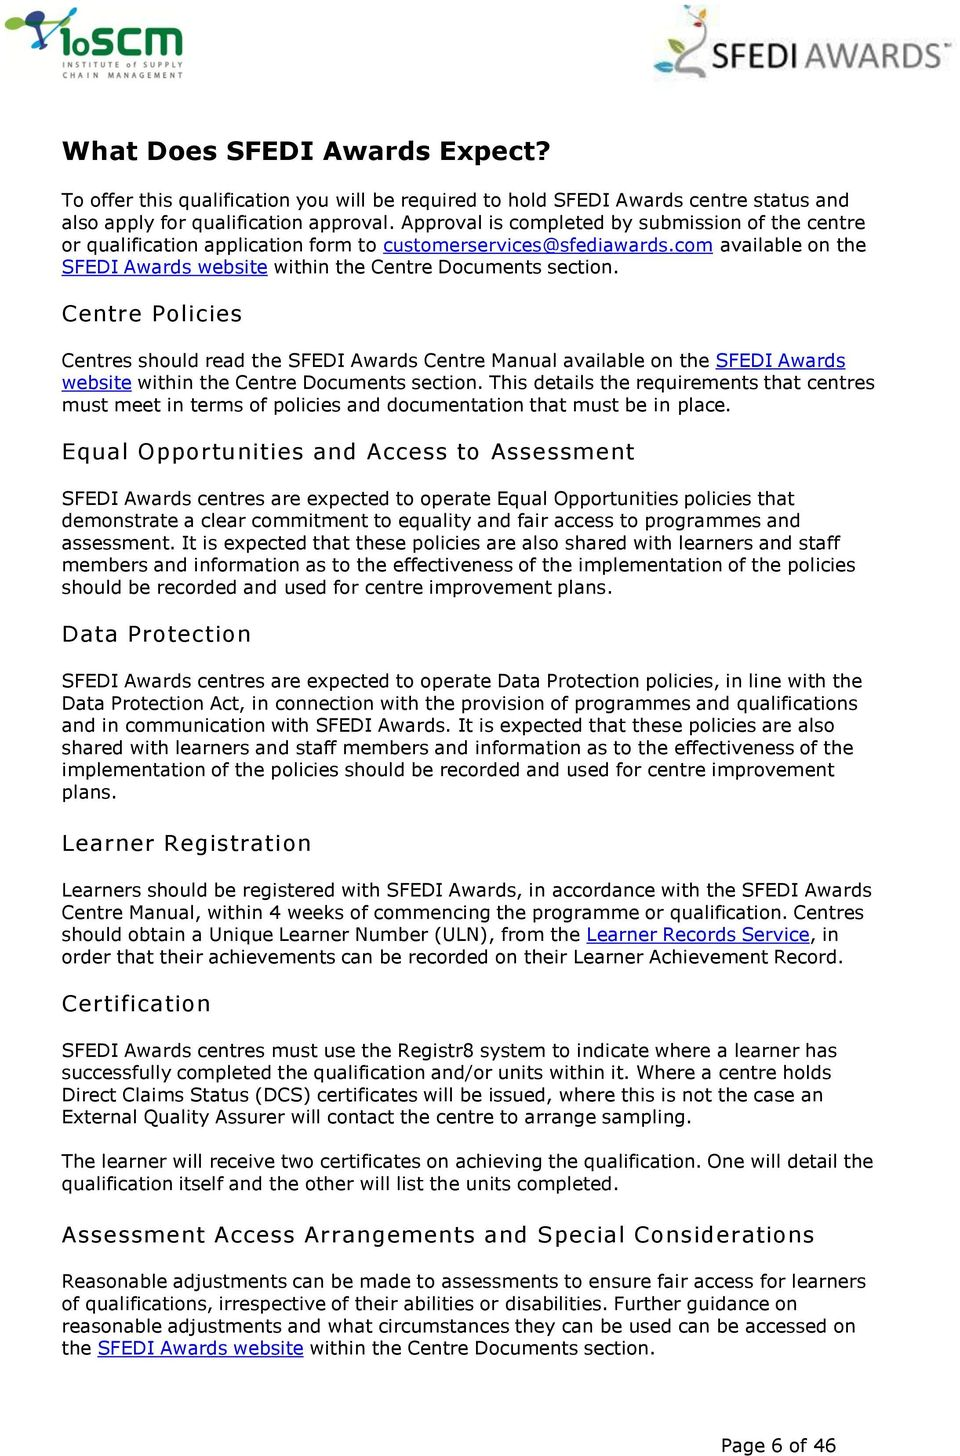 Centre Policies Centres should read the SFEDI Awards Centre Manual available on the SFEDI Awards website within the Centre Documents section.